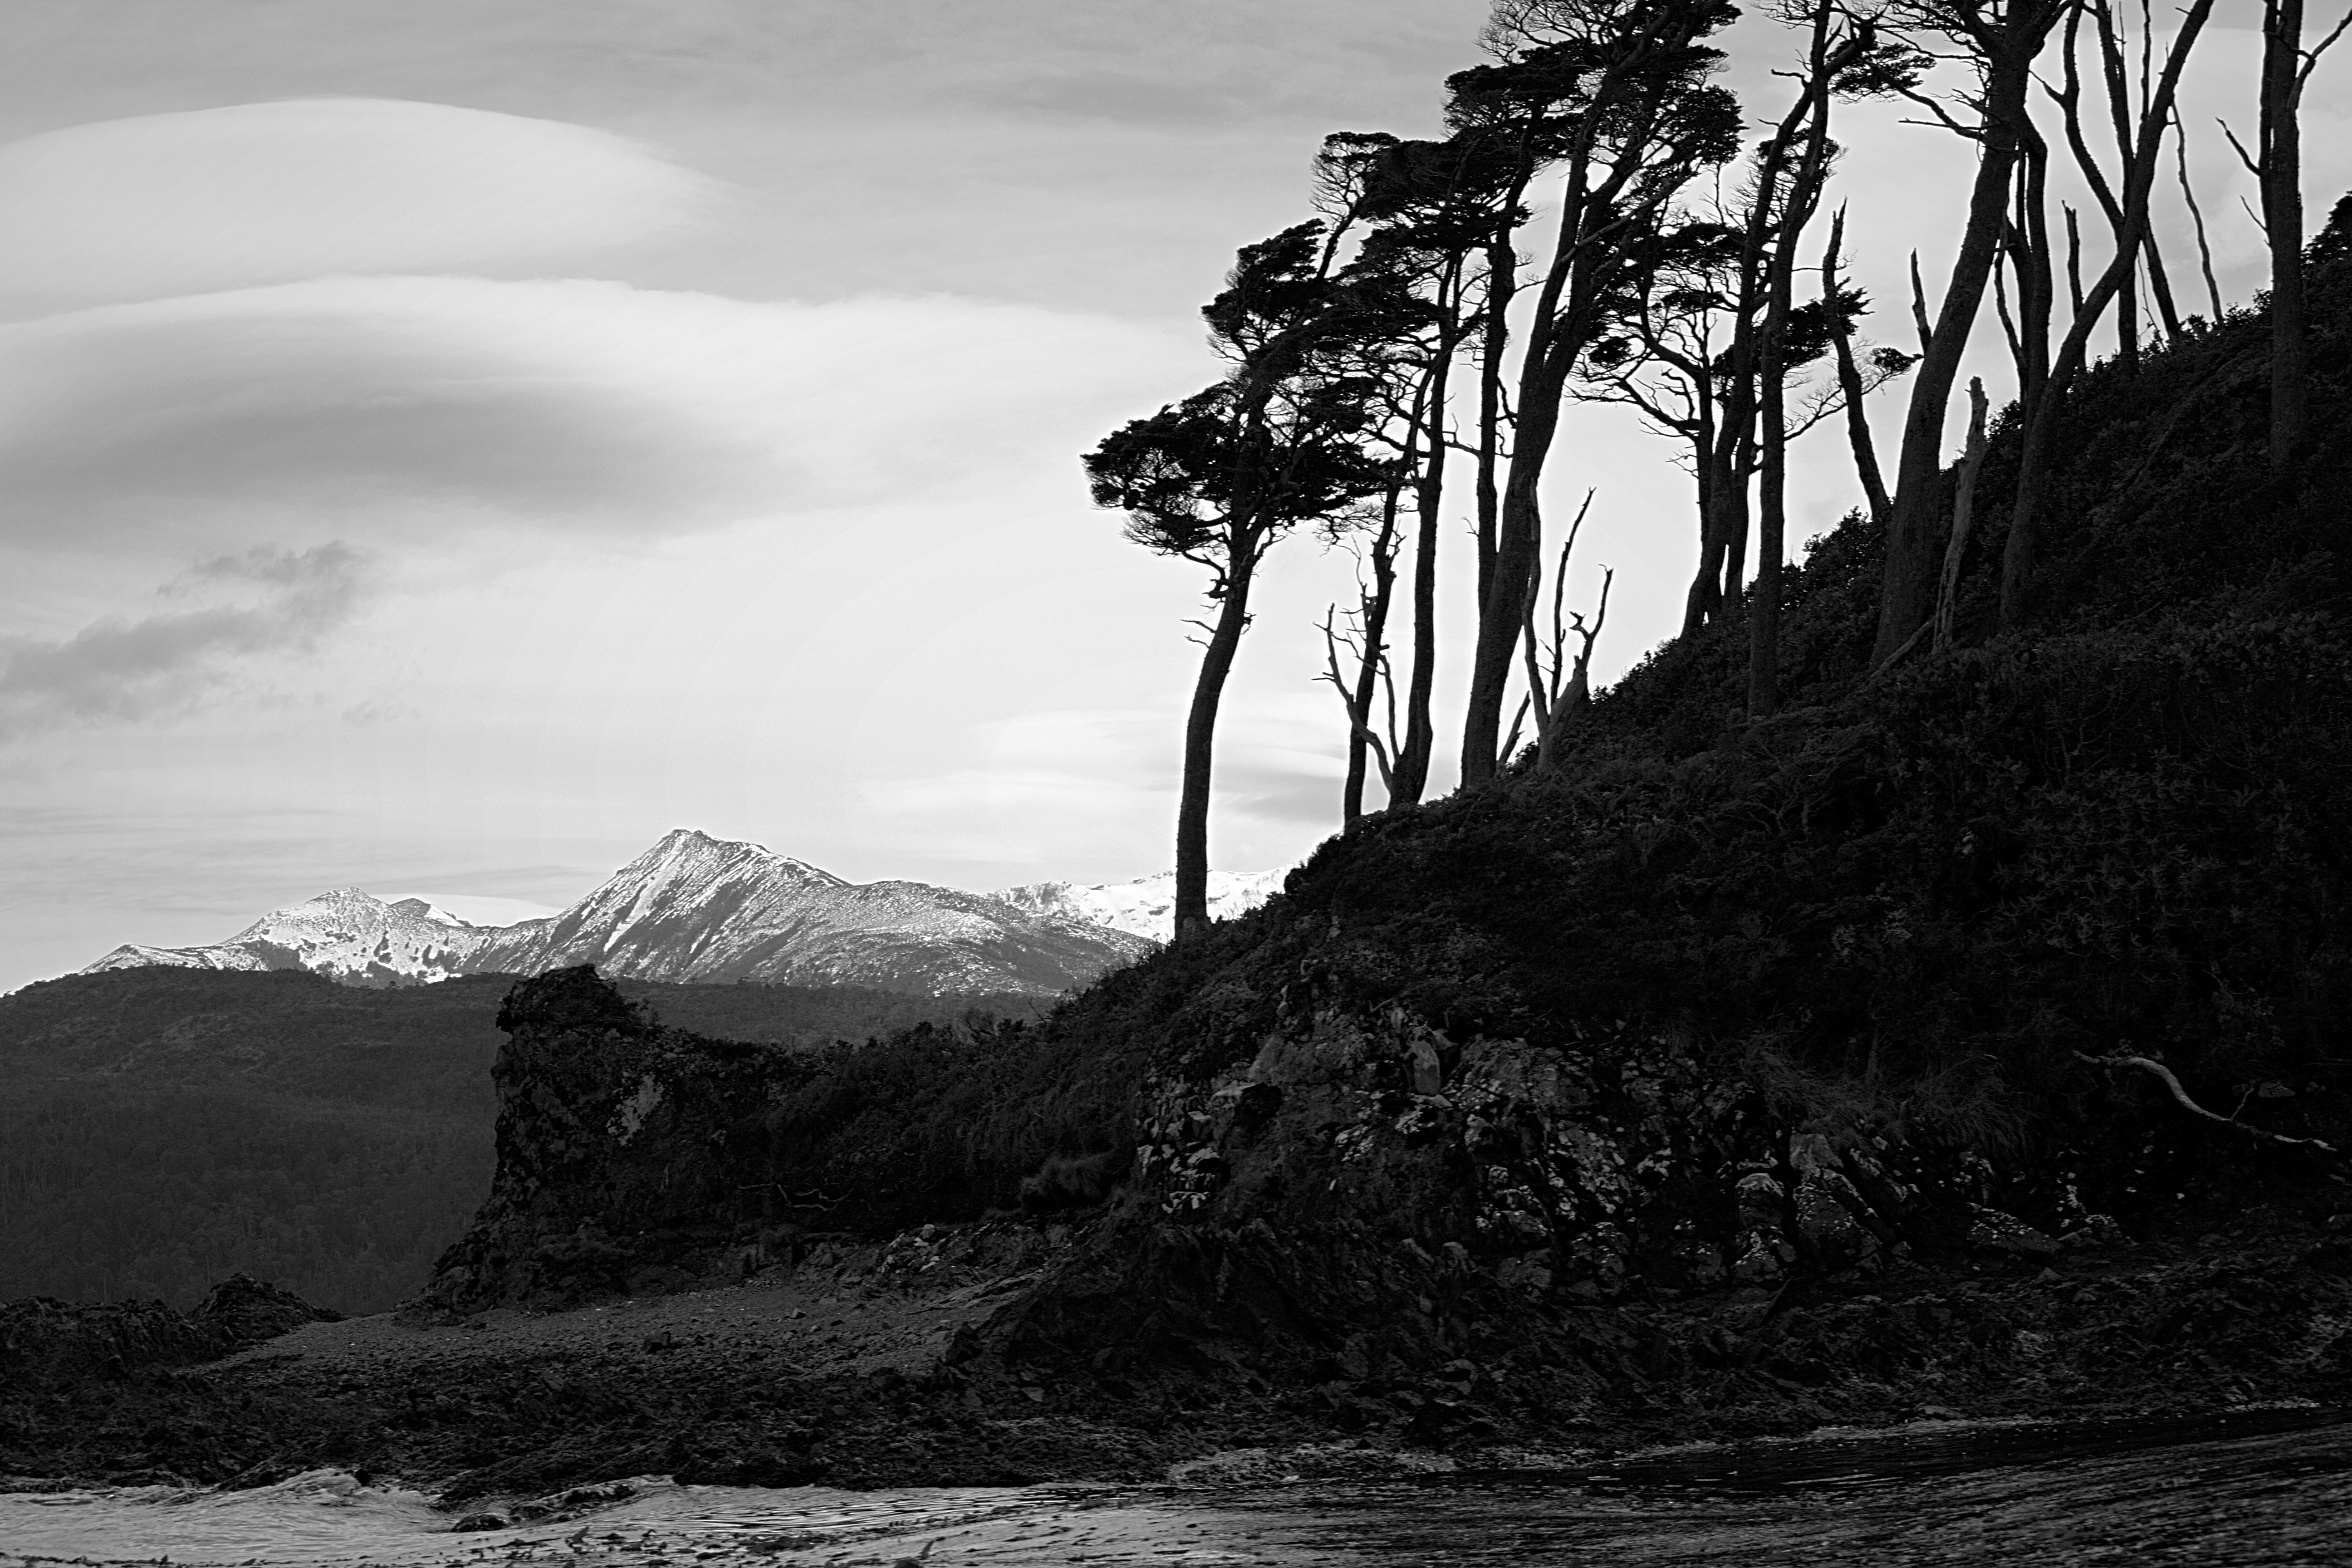 Grayscale photo of trees near body of water